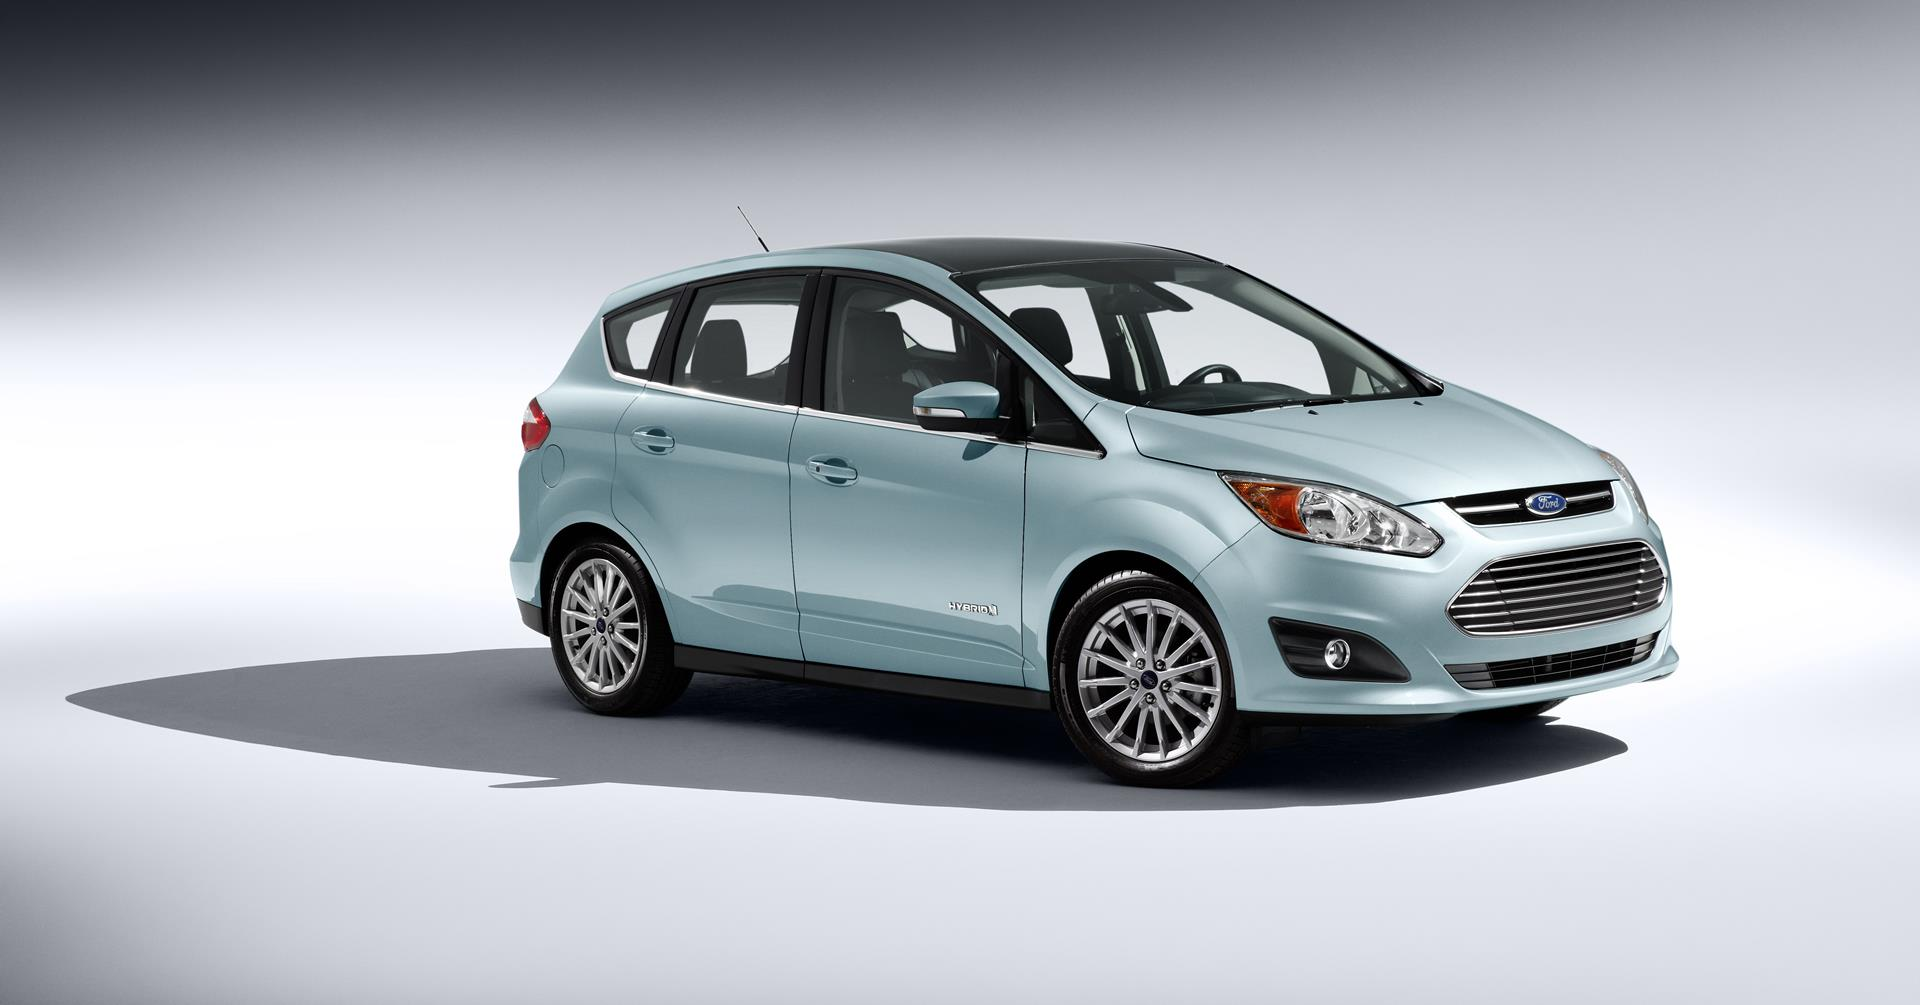 2015 Ford C-Max News and Information | conceptcarz.com